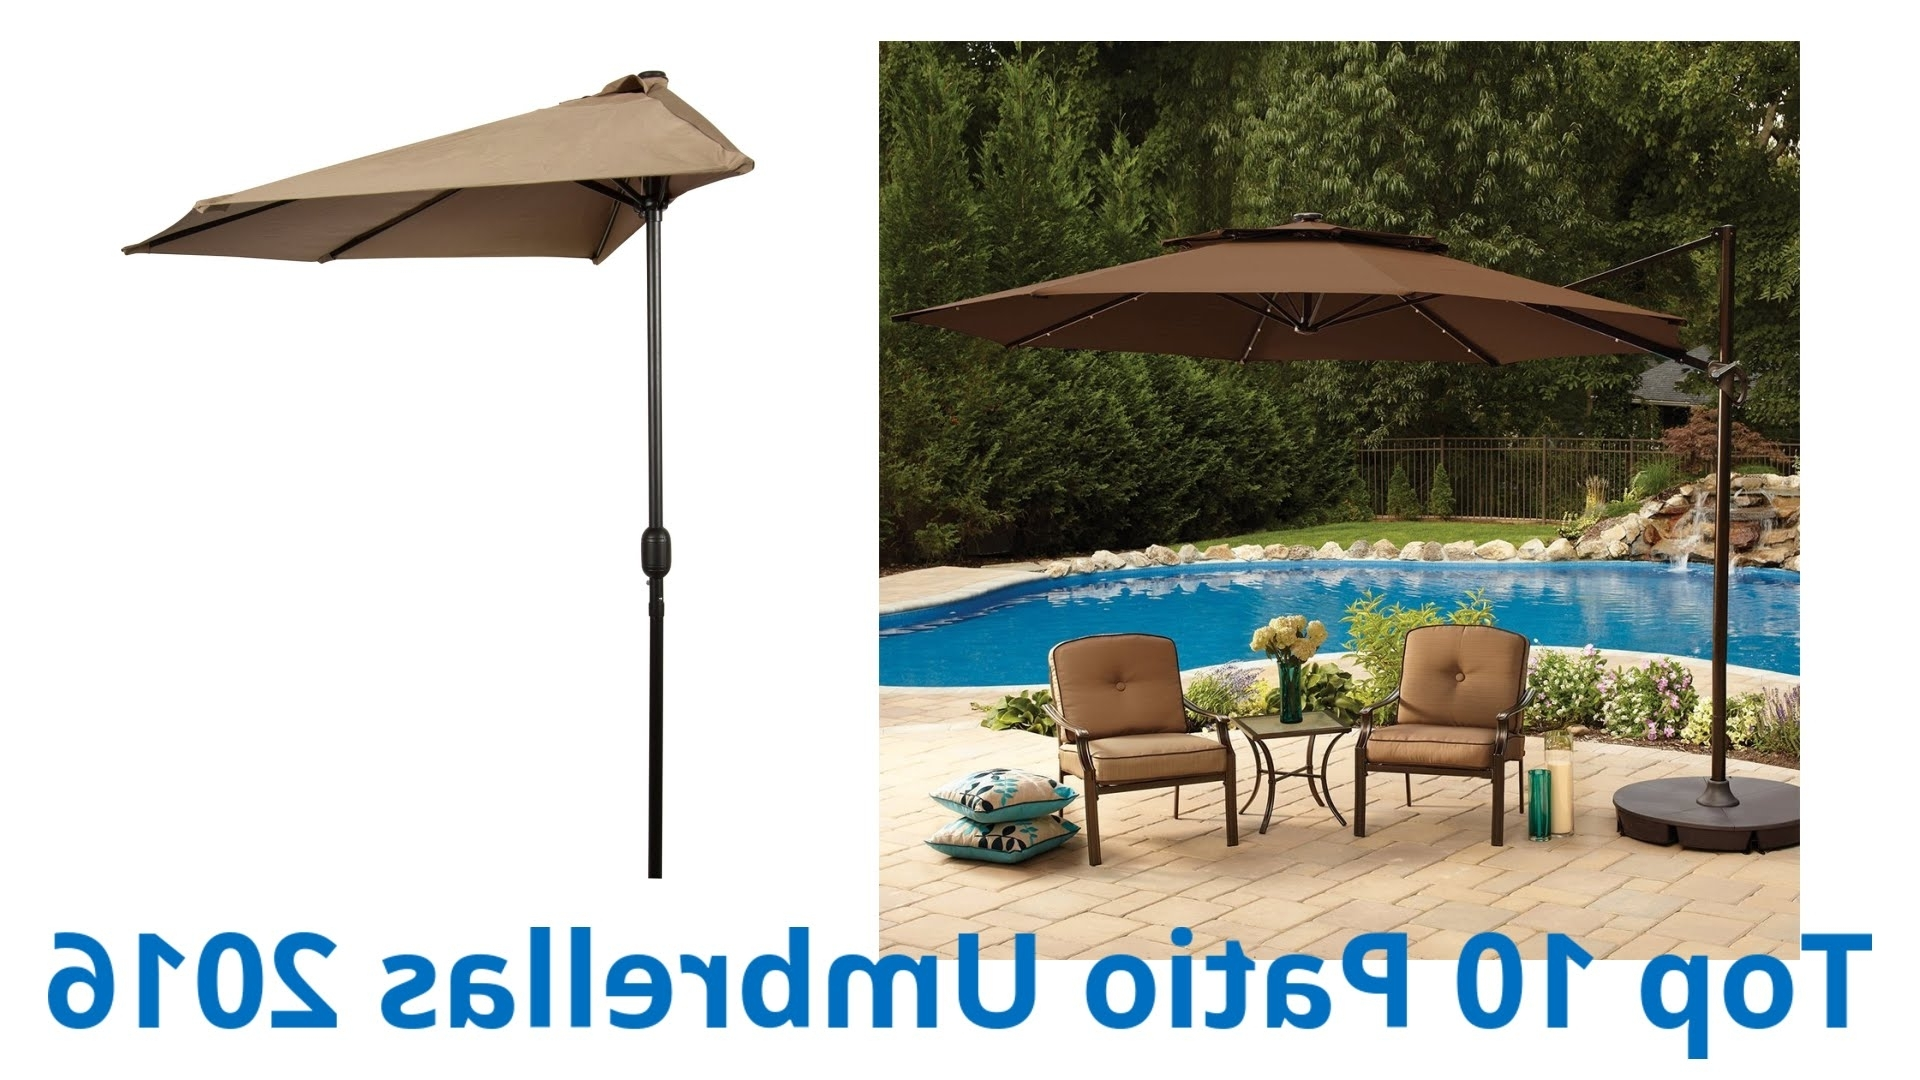 10 Best Patio Umbrellas 2016 – Youtube For Most Recently Released Patio Umbrellas For High Wind Areas (View 11 of 20)